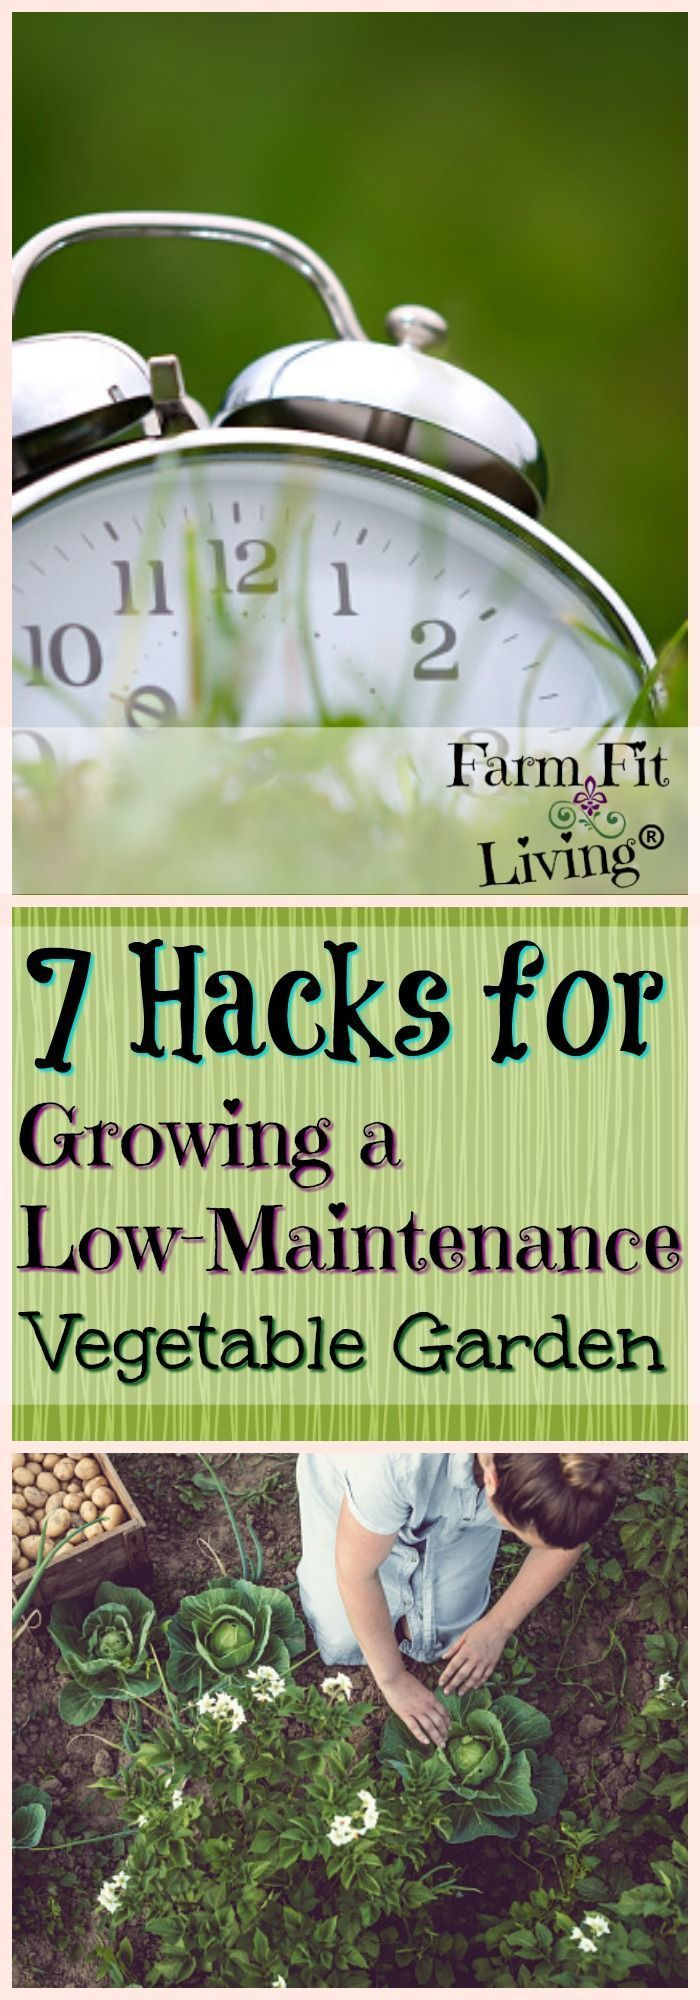 7 Hacks For Growing A Low-Maintenance Vegetable Garden